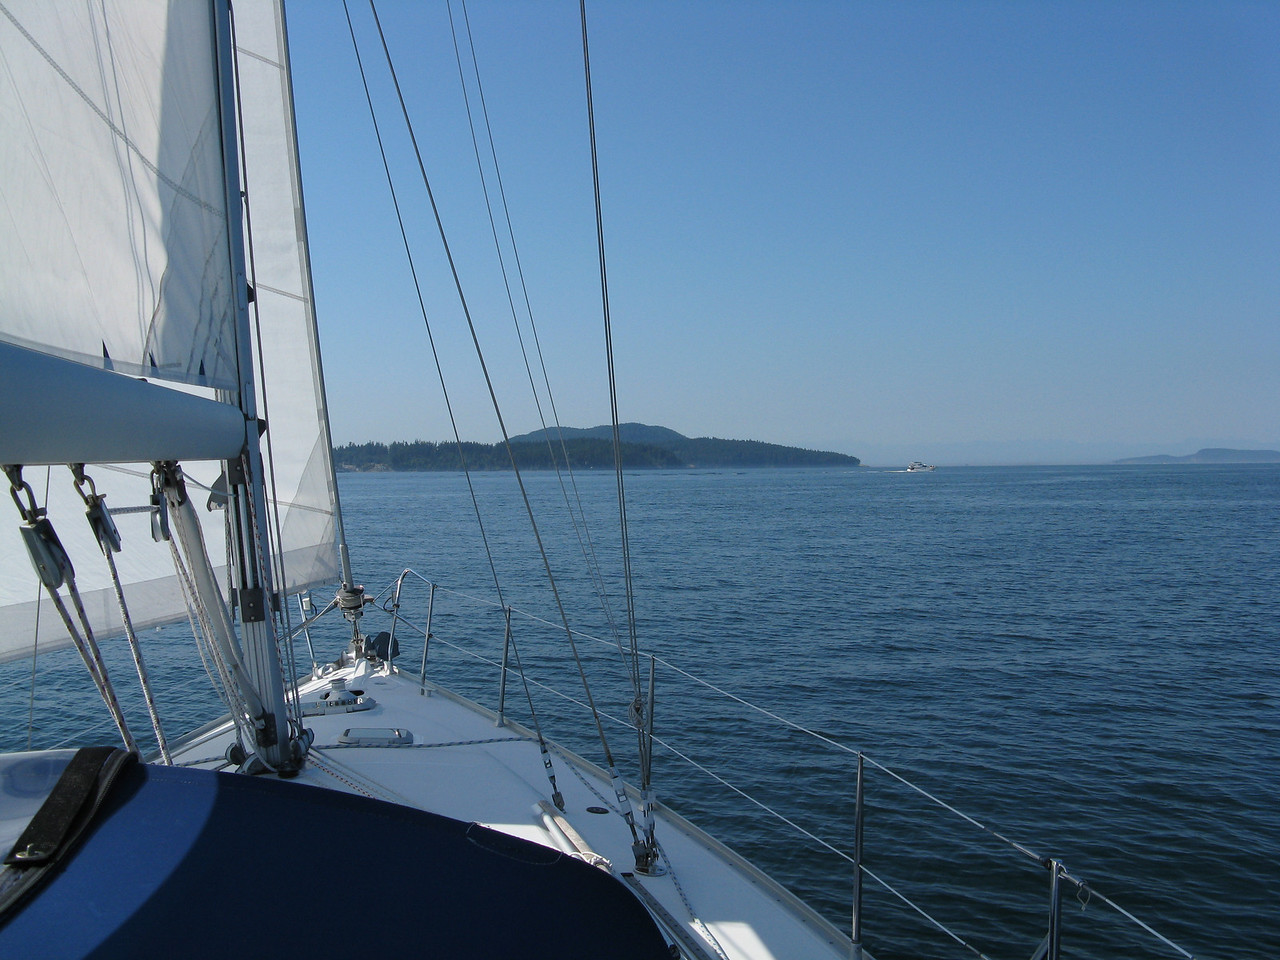 On Monday morning, we are sailing  west across Rosario Strait enroute from Anacortes to Friday Harbor on San Juan Island..